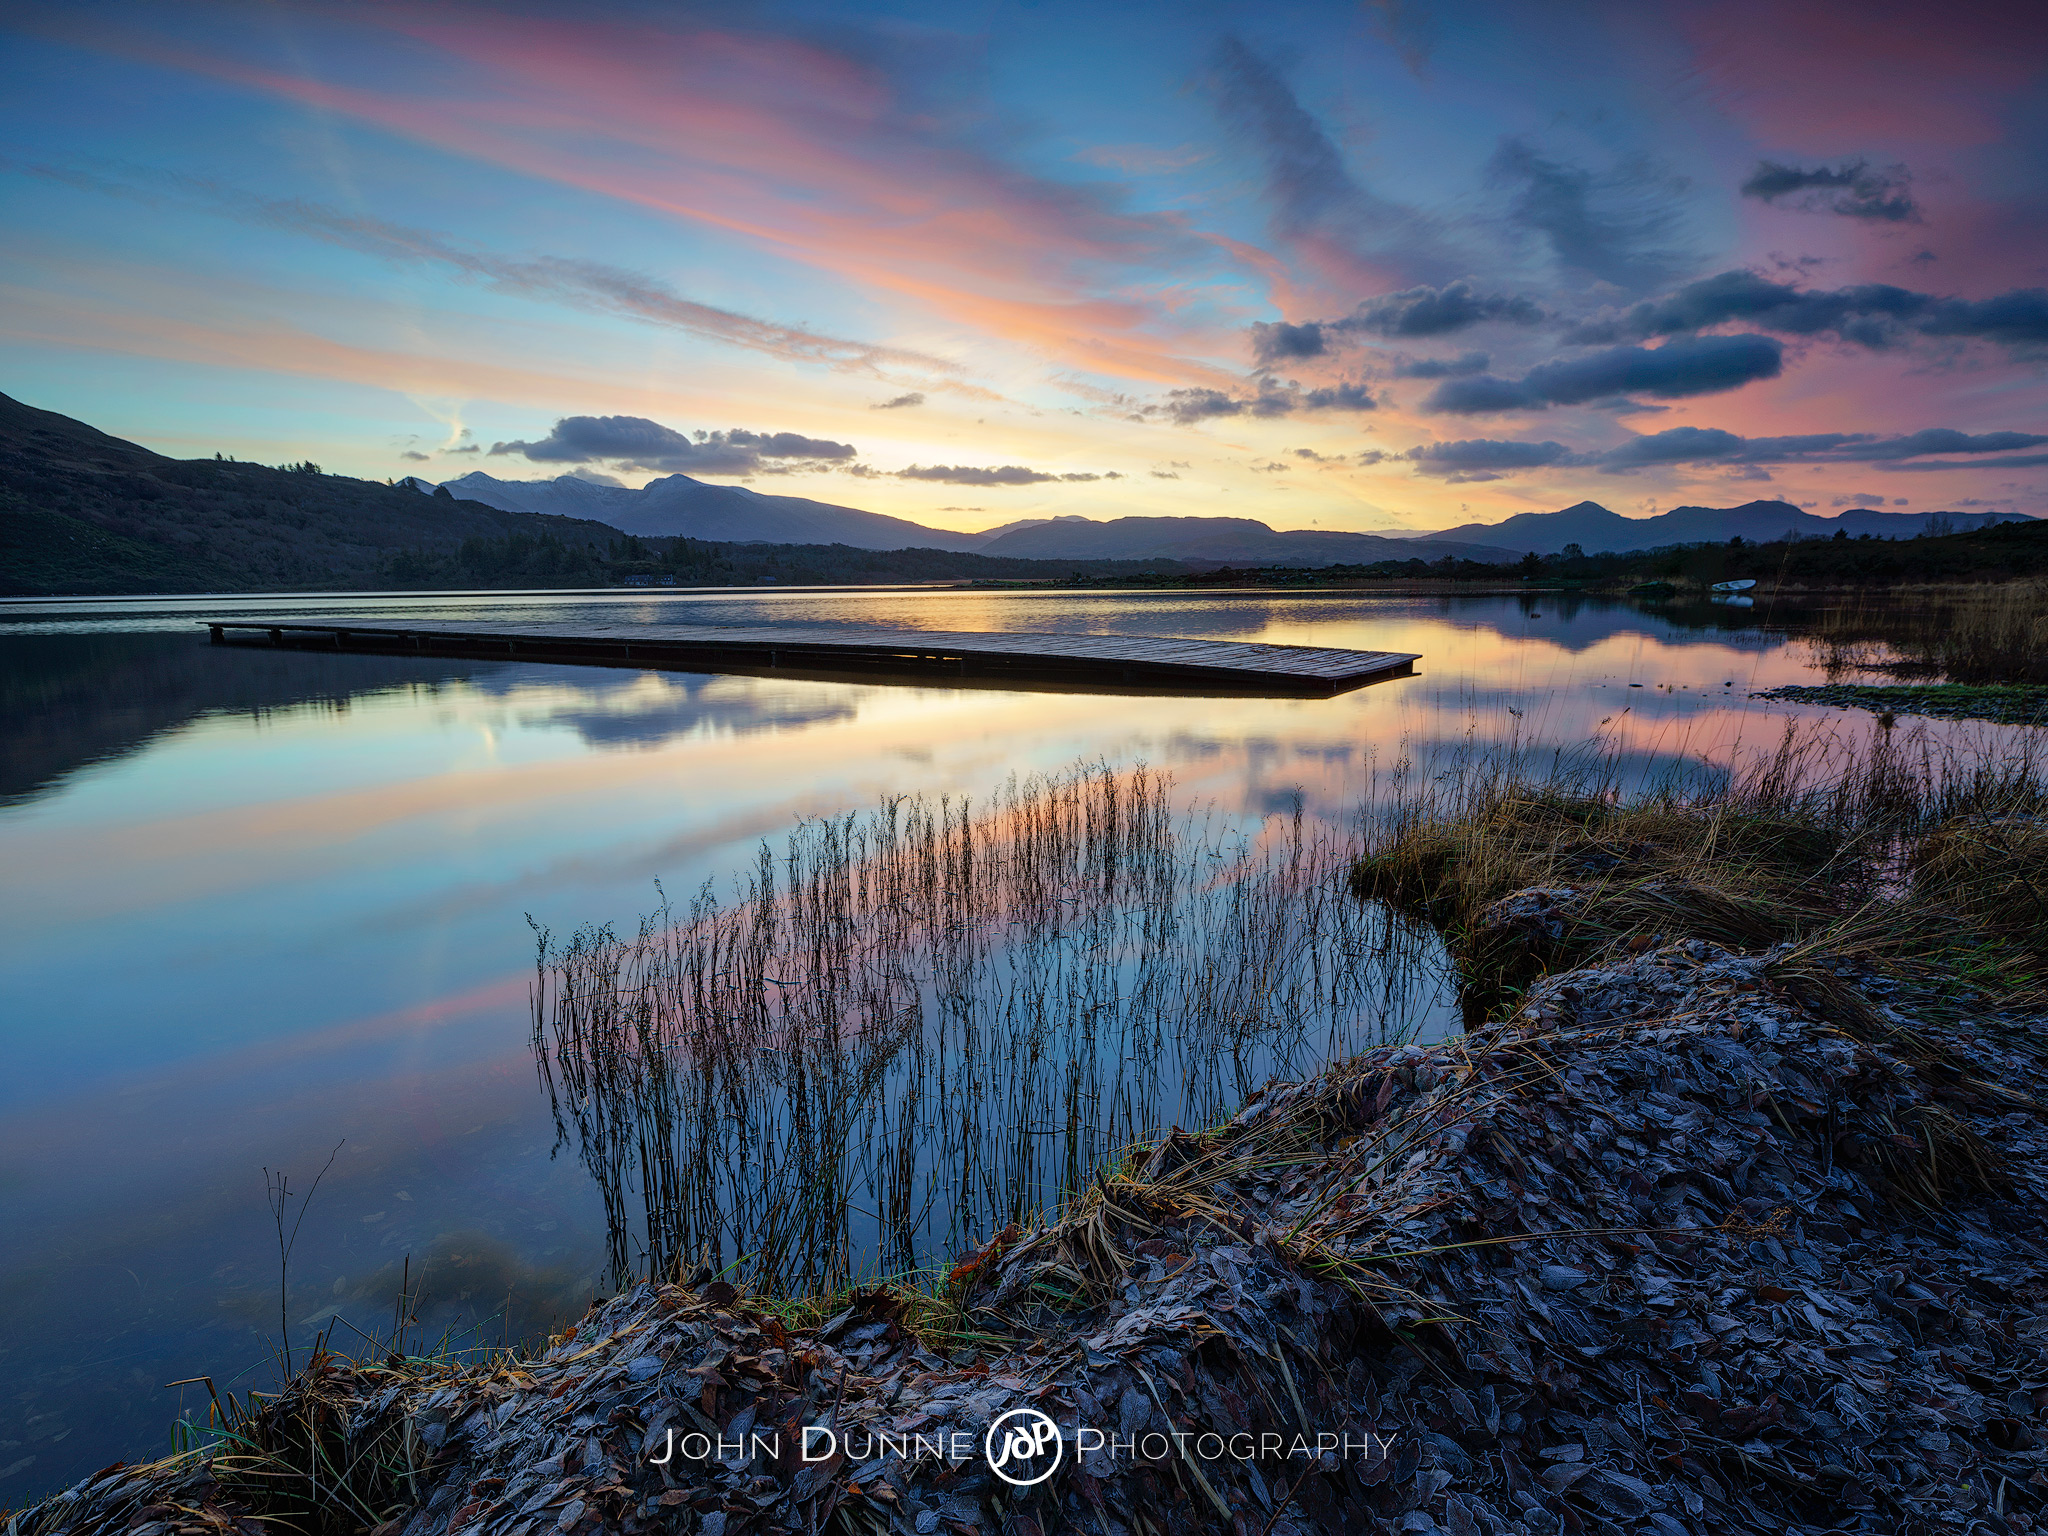 Dawn's light above Lough Caragh by © John Dunne 2014, all rights reserved.